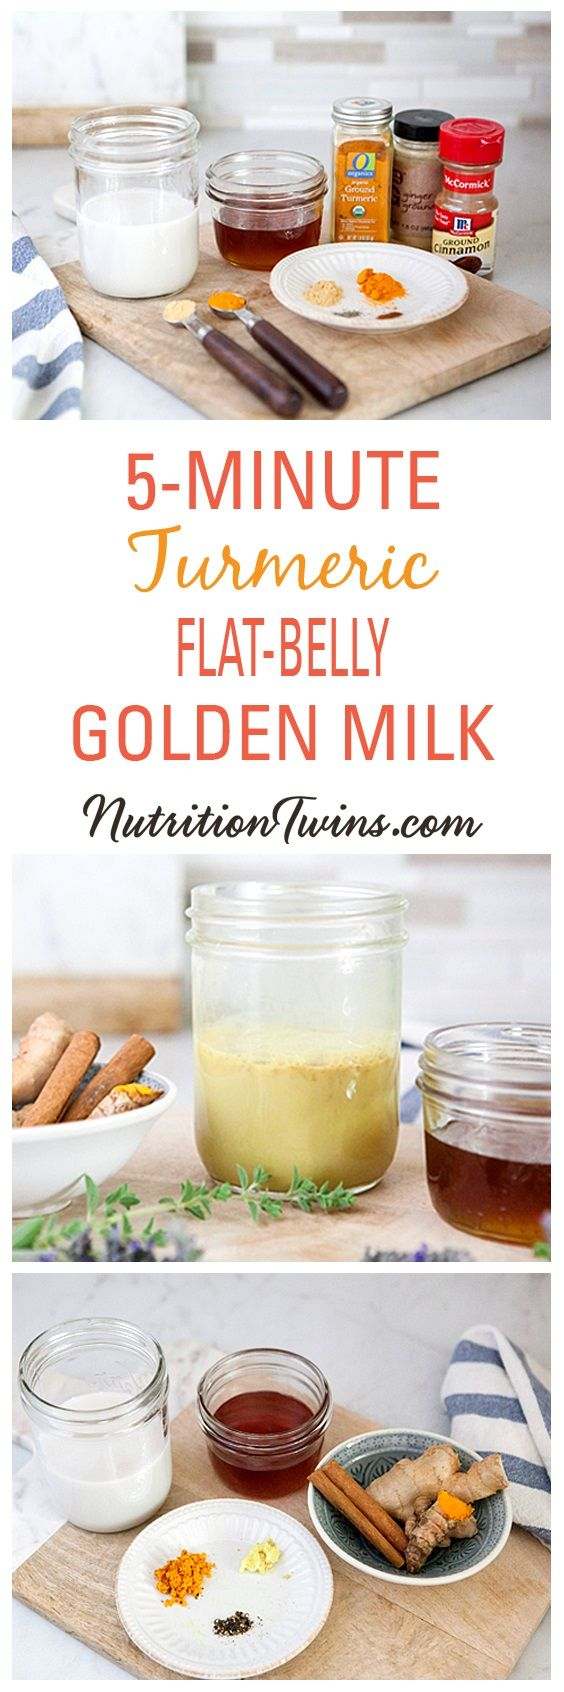 5-Minute Turmeric Flat-Belly Golden Milk | Only 45 Calories | Anti-inflammatory, Flushes Bloat | Easy to make--mix & match ingredients!